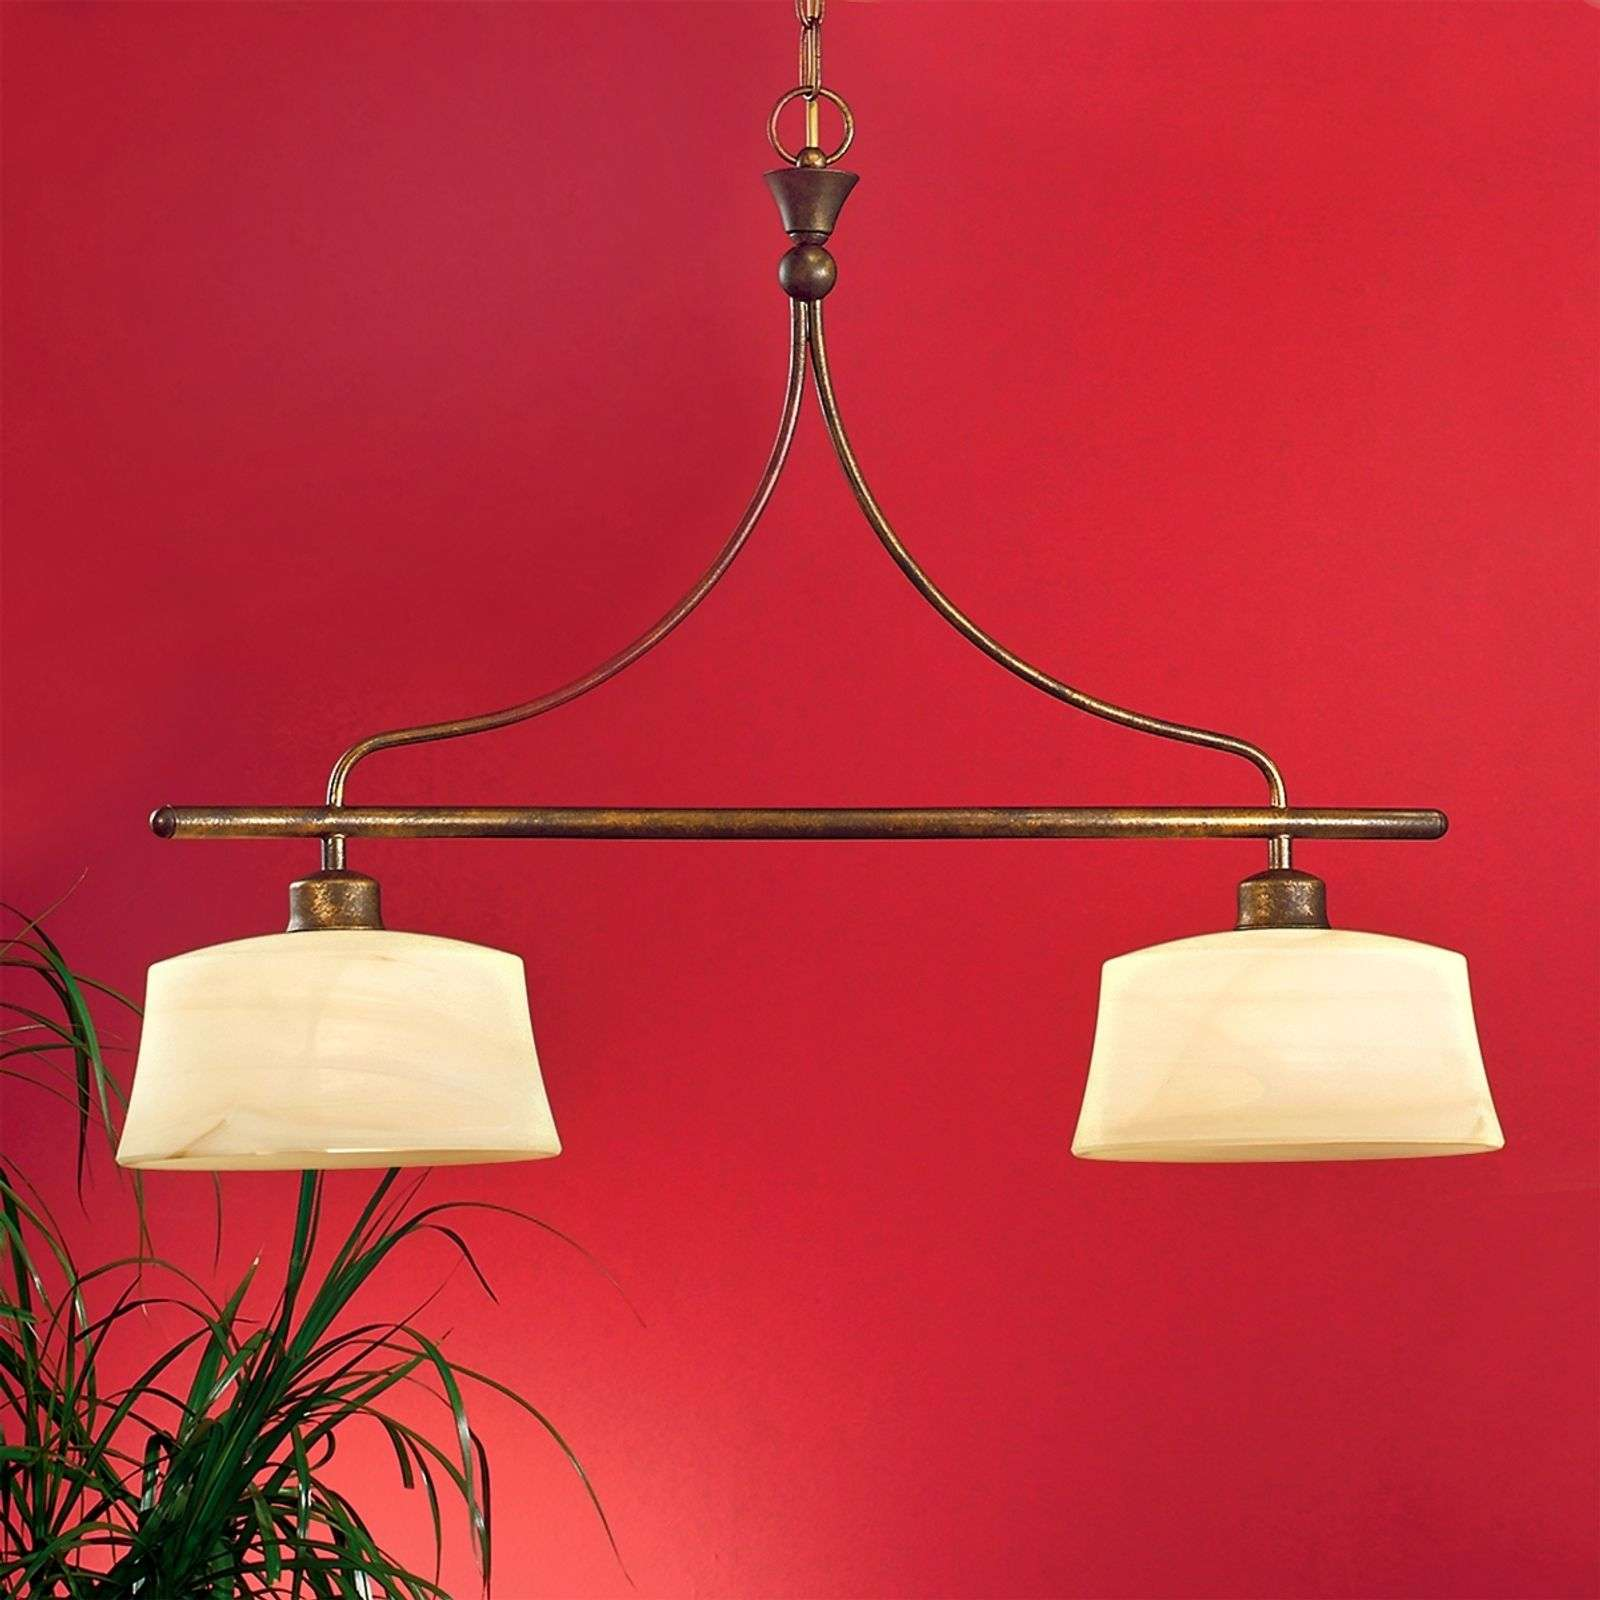 Suspension stylée ESTELLA 2 lumières